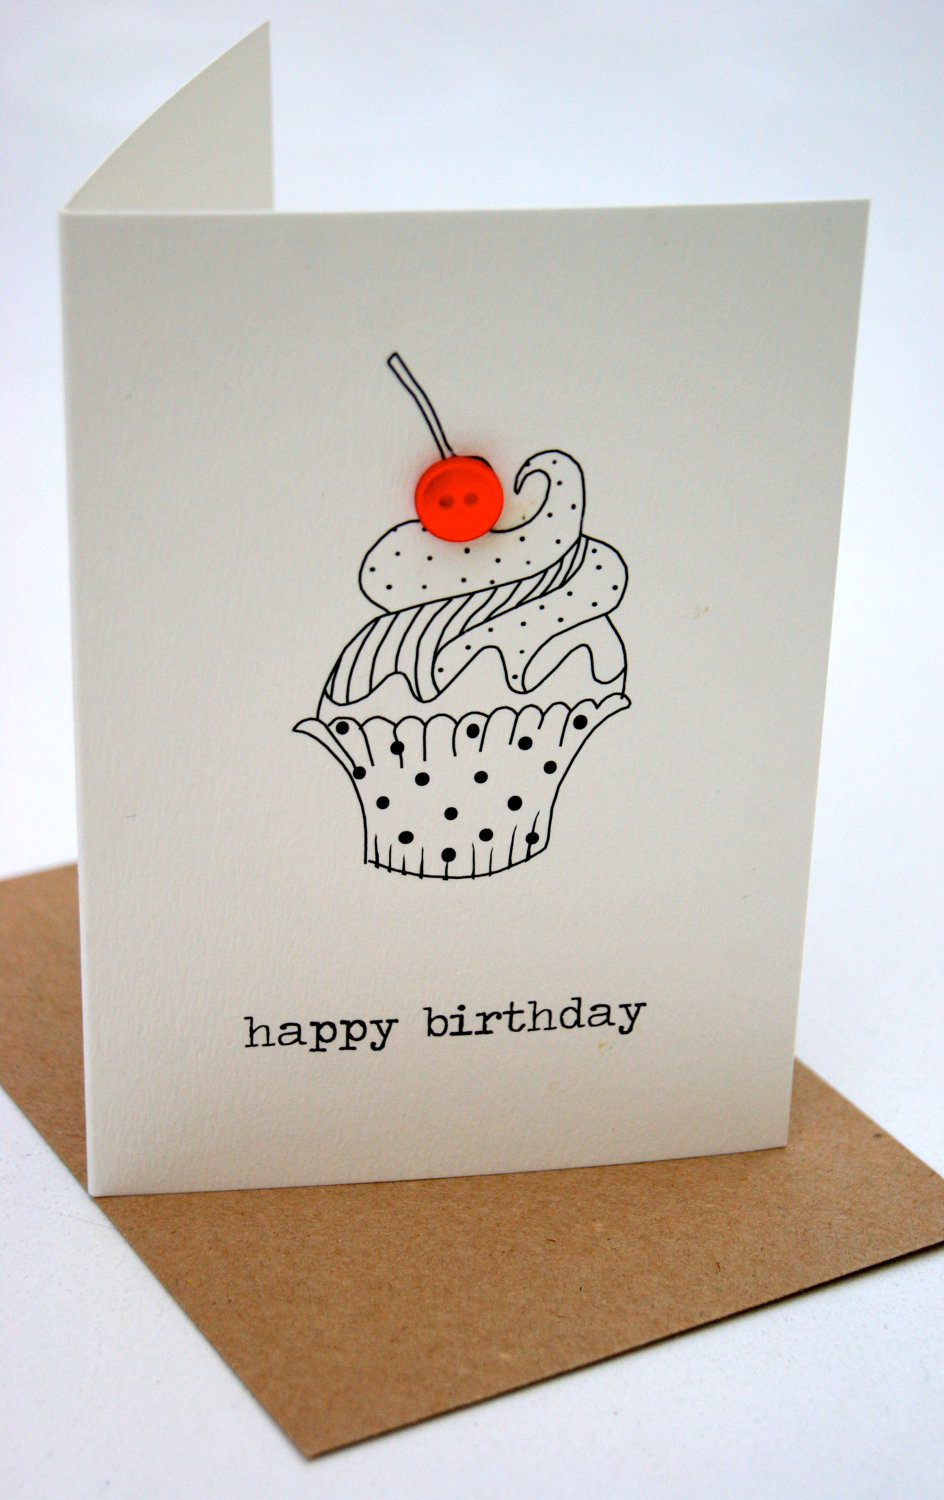 good birthday card drawings ; 910b1daacdcde7e4a128b708e10a20c2